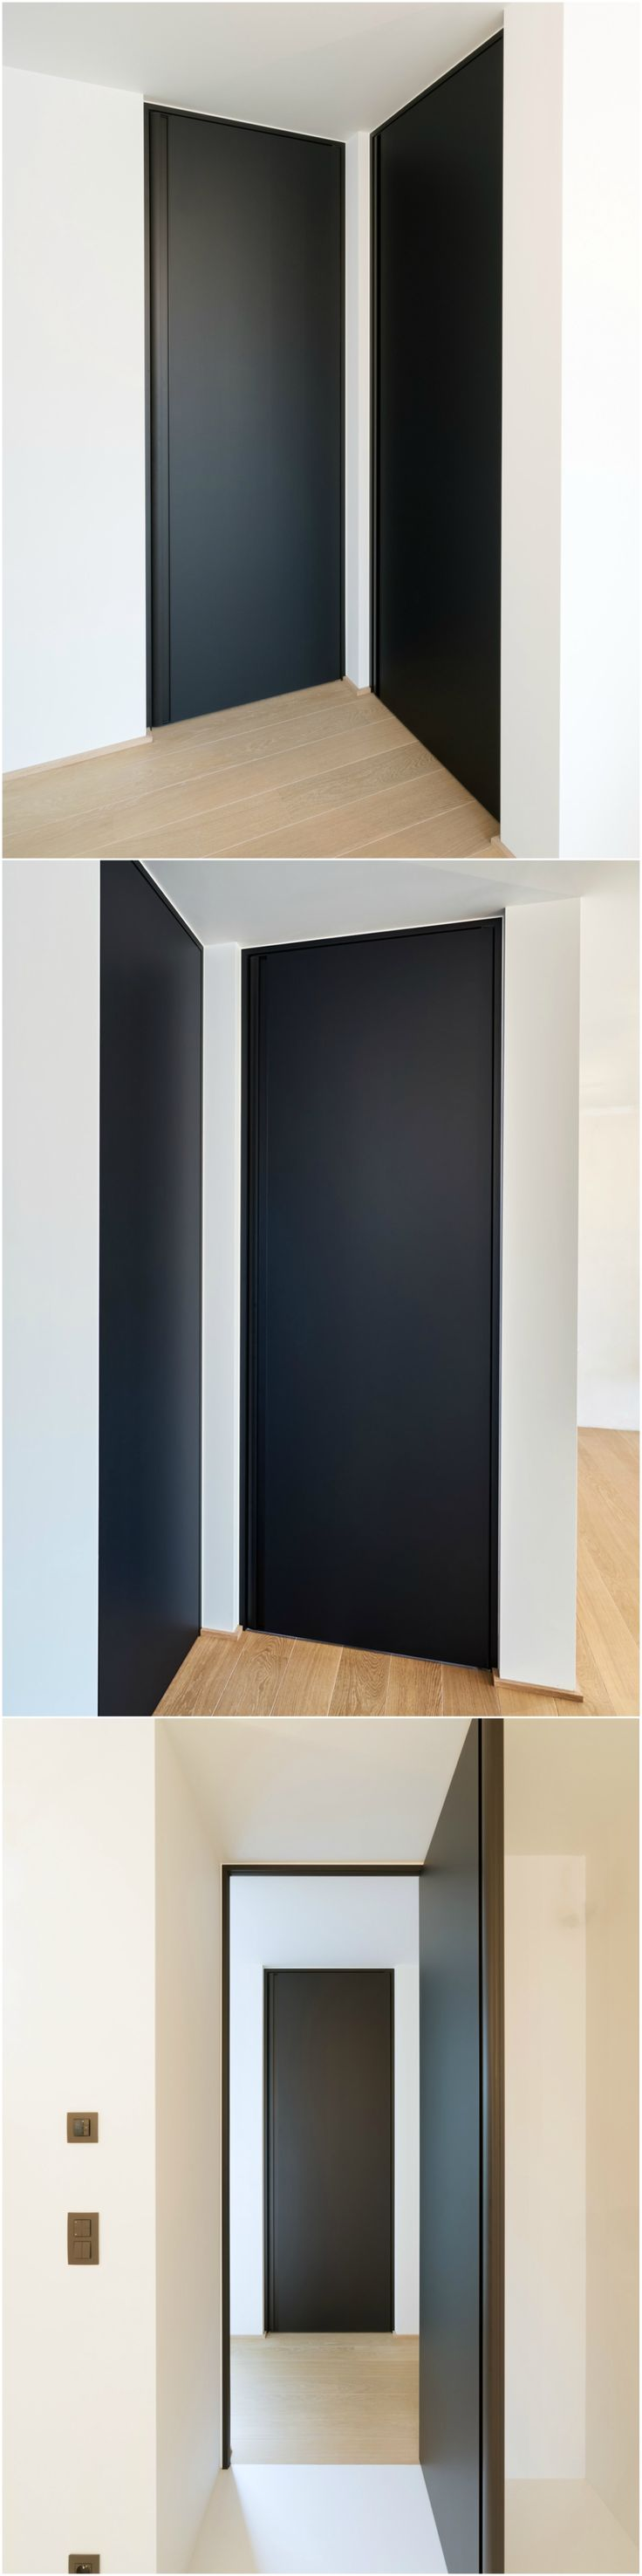 Best 25 modern interior doors ideas on pinterest interior modern black interior door custom made from floor to ceiling the minimal black eventelaan Gallery